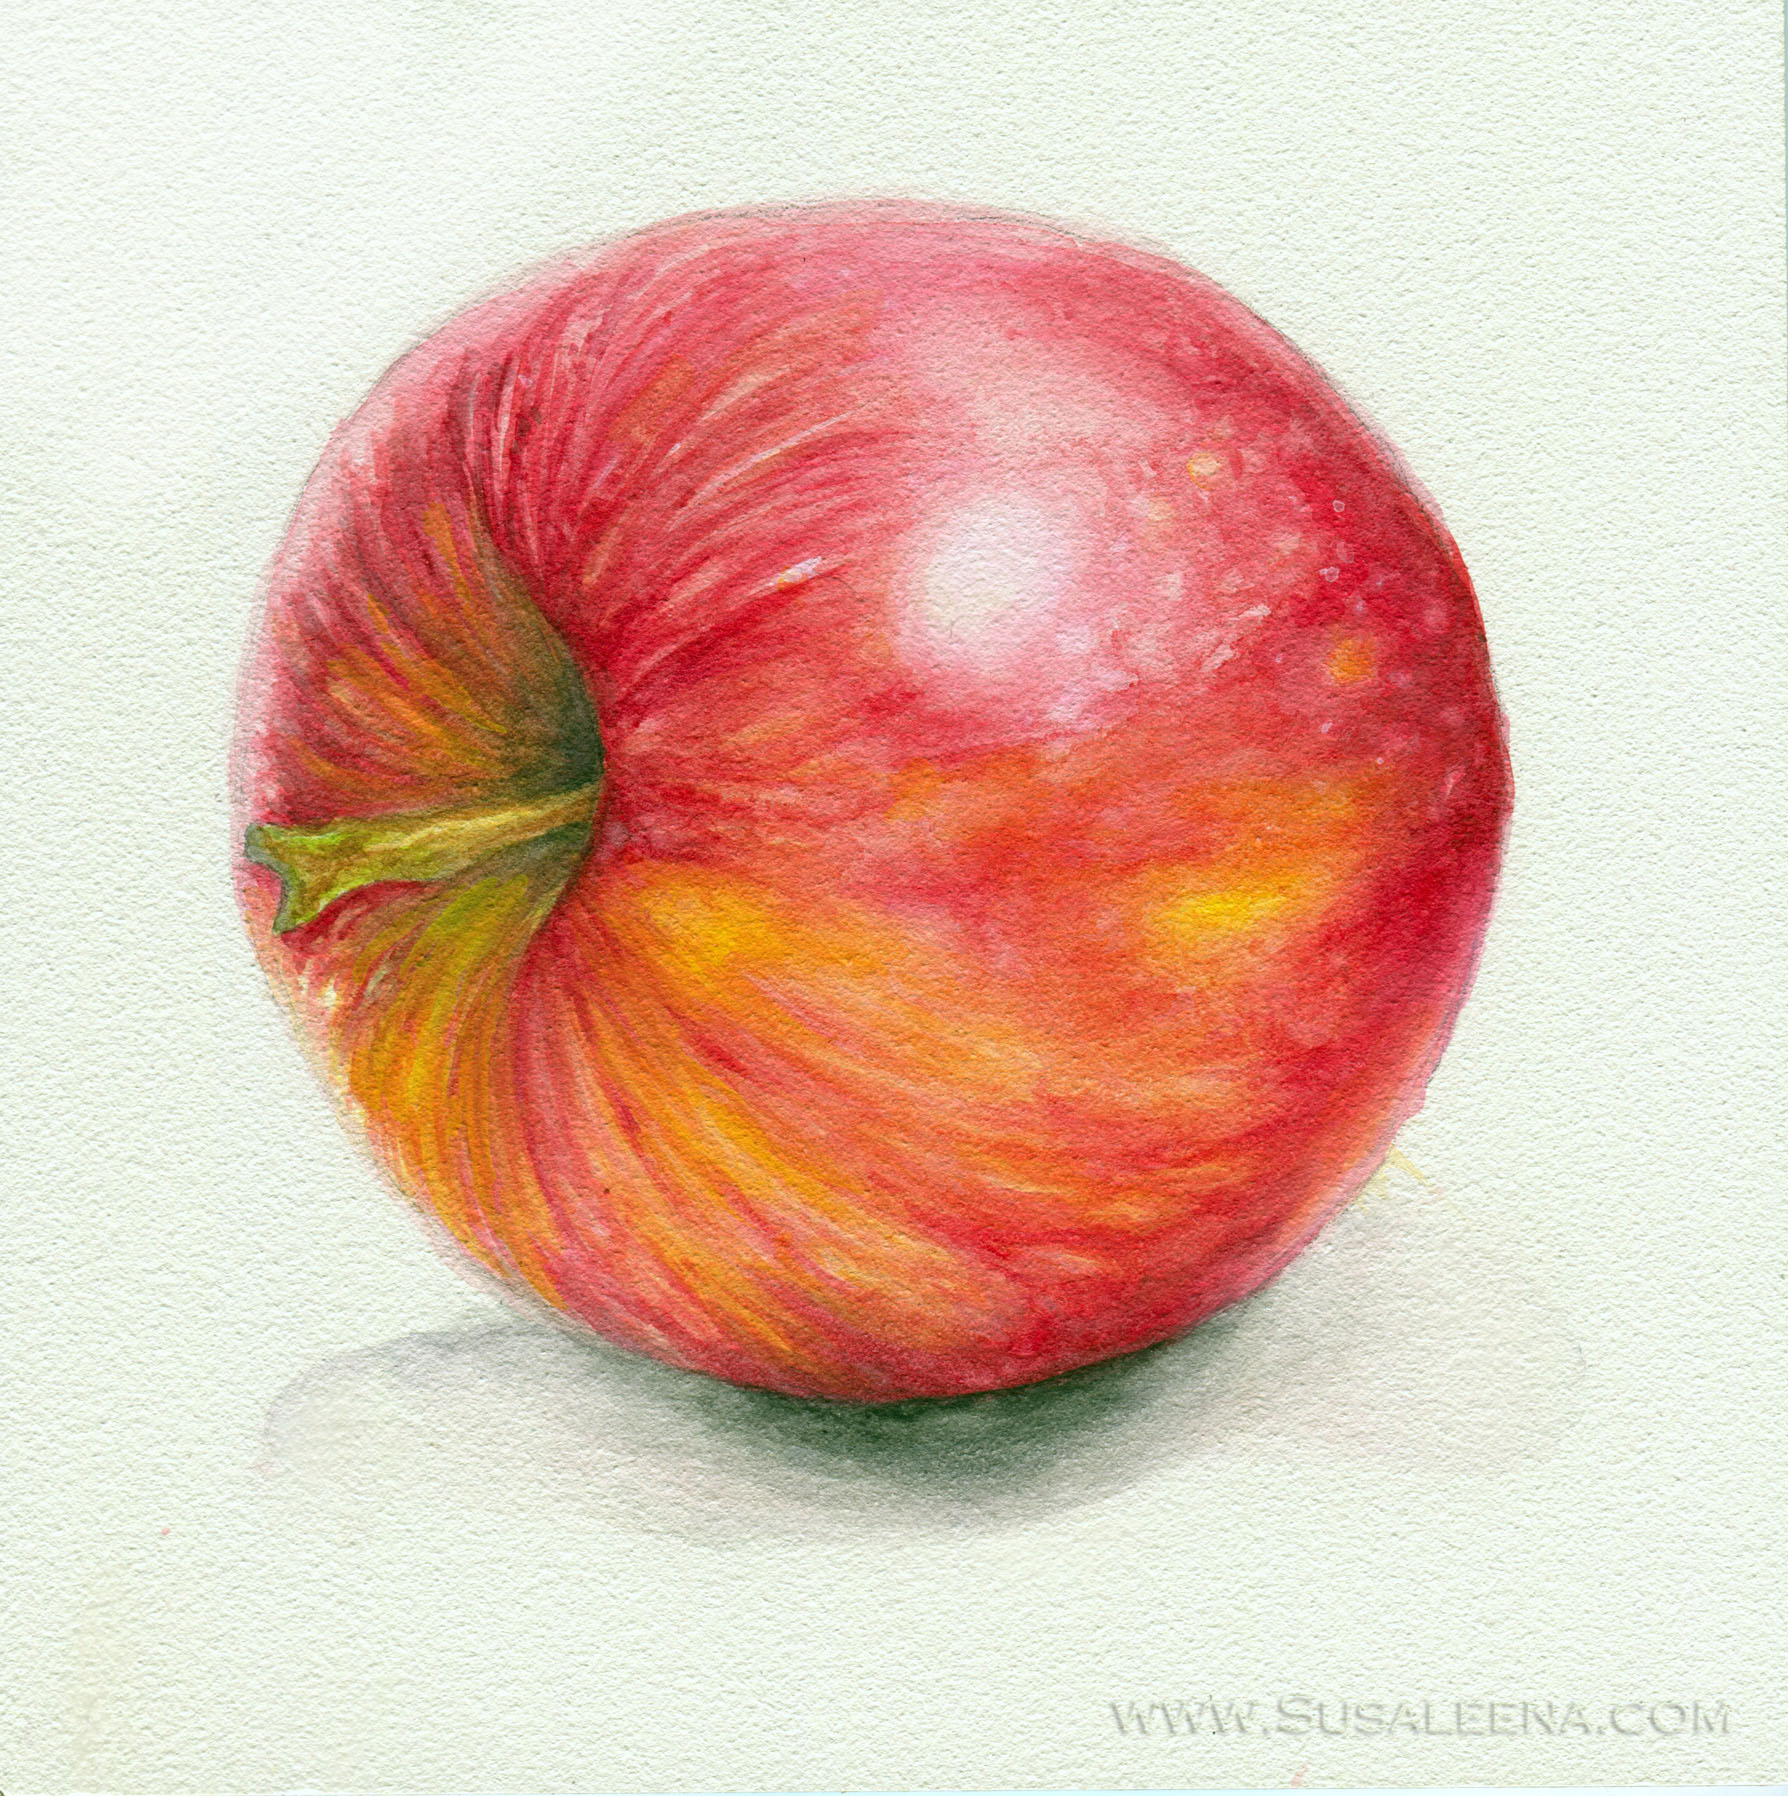 The first still life piece I painted in 2013!